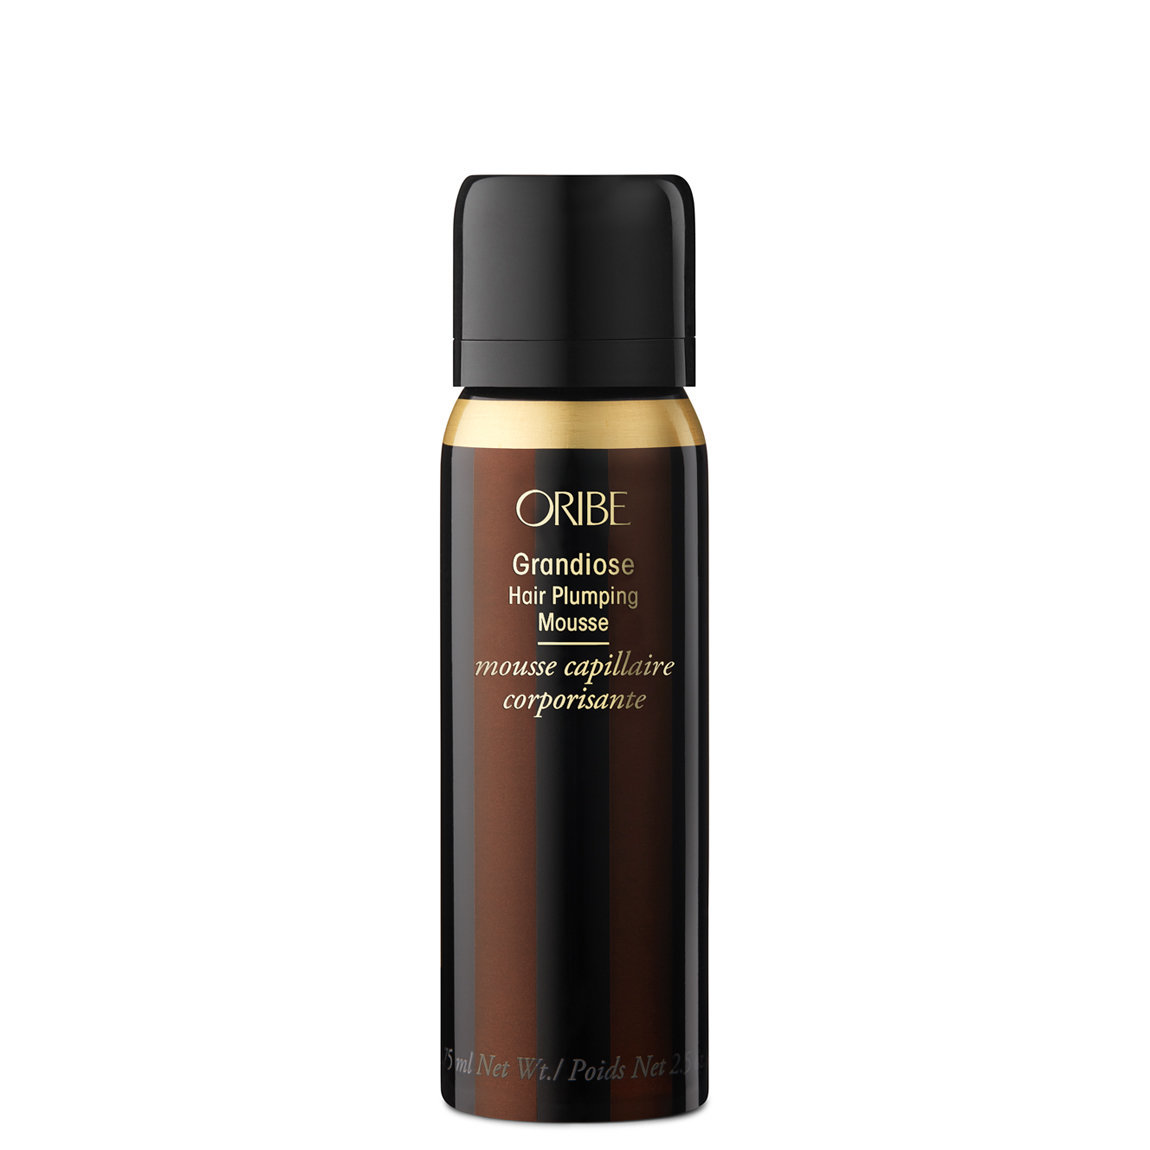 Oribe Grandiose Hair Plumping Mousse 2.5 oz alternative view 1 - product swatch.